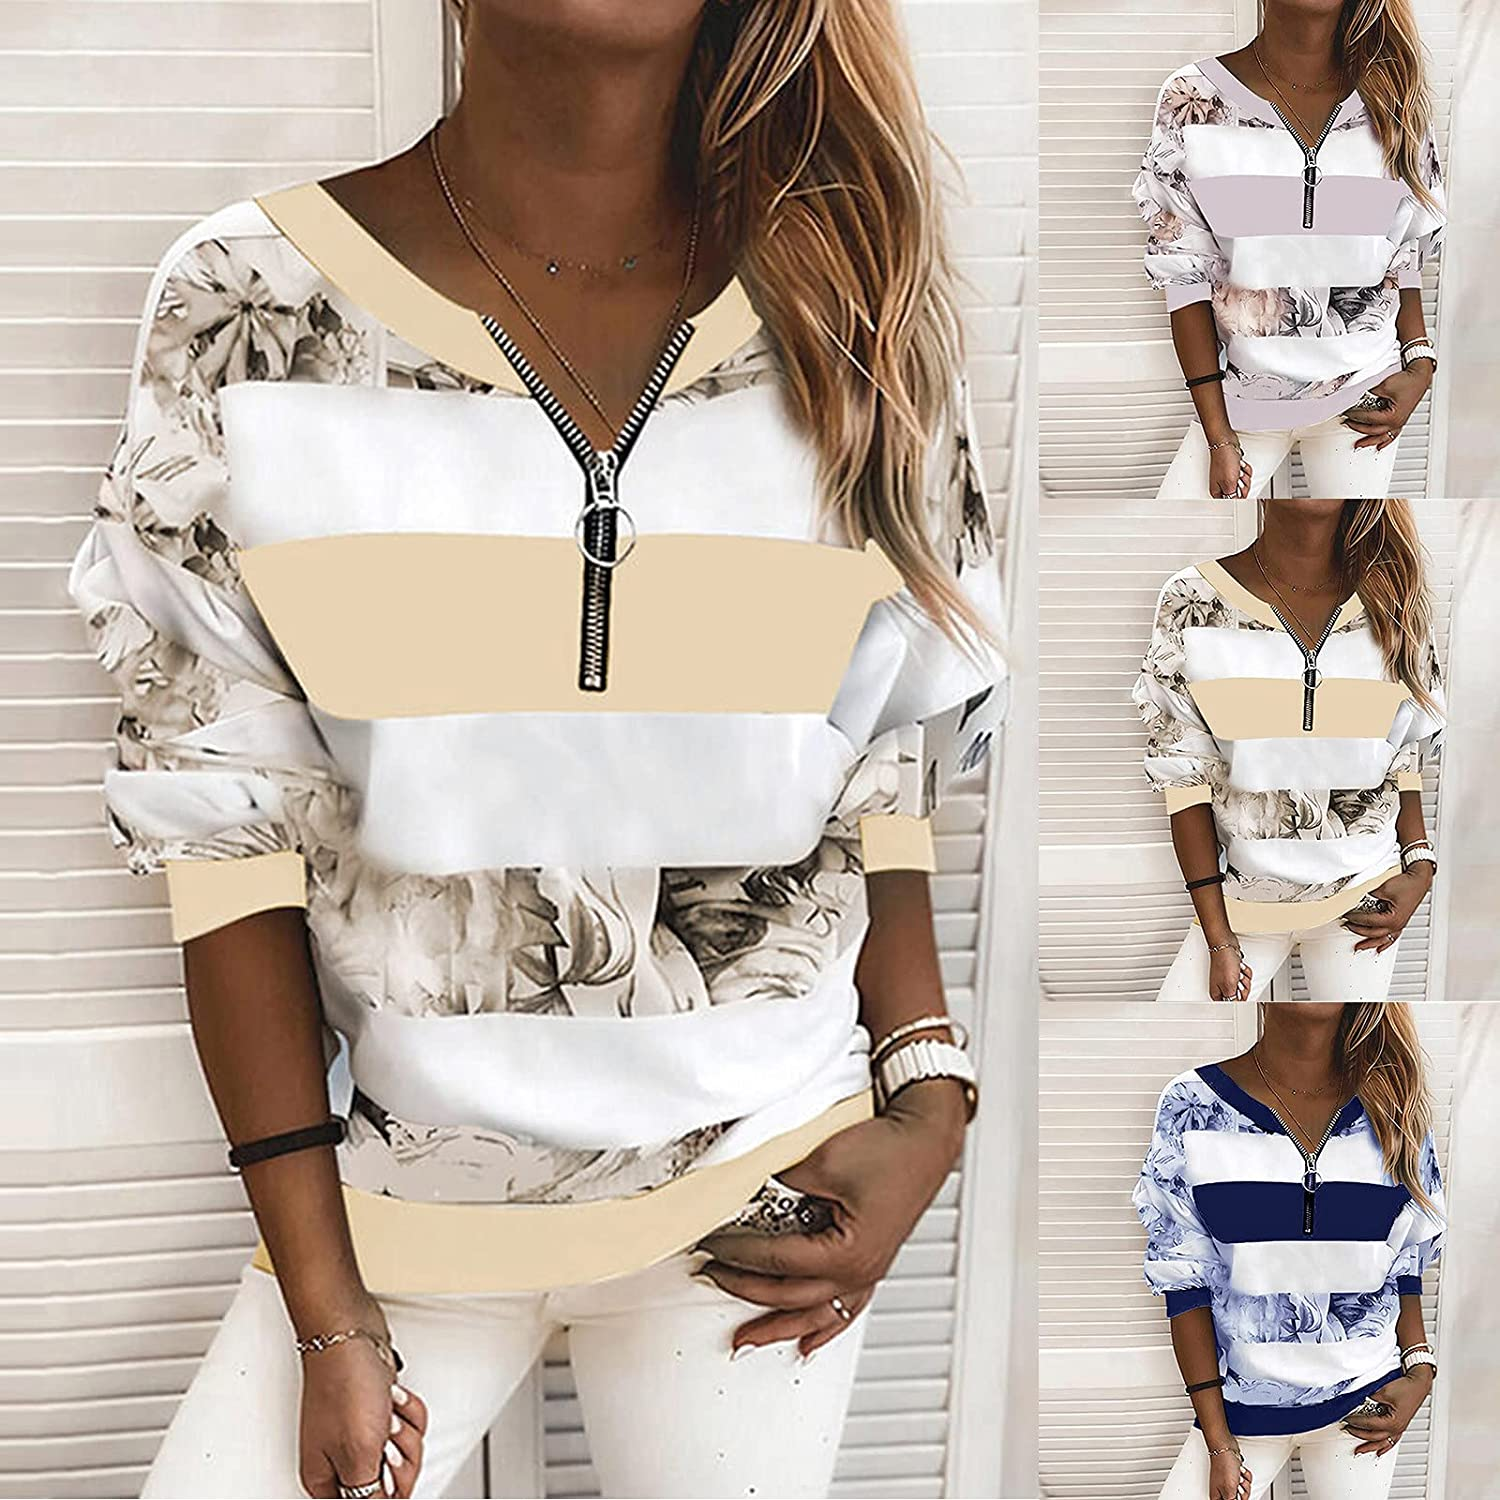 Gerichy Hoodies for Women 2021, Womens Casual Long Graphic Printed Hoodies Fashion Hooded Sweatshirts Pullover Tops